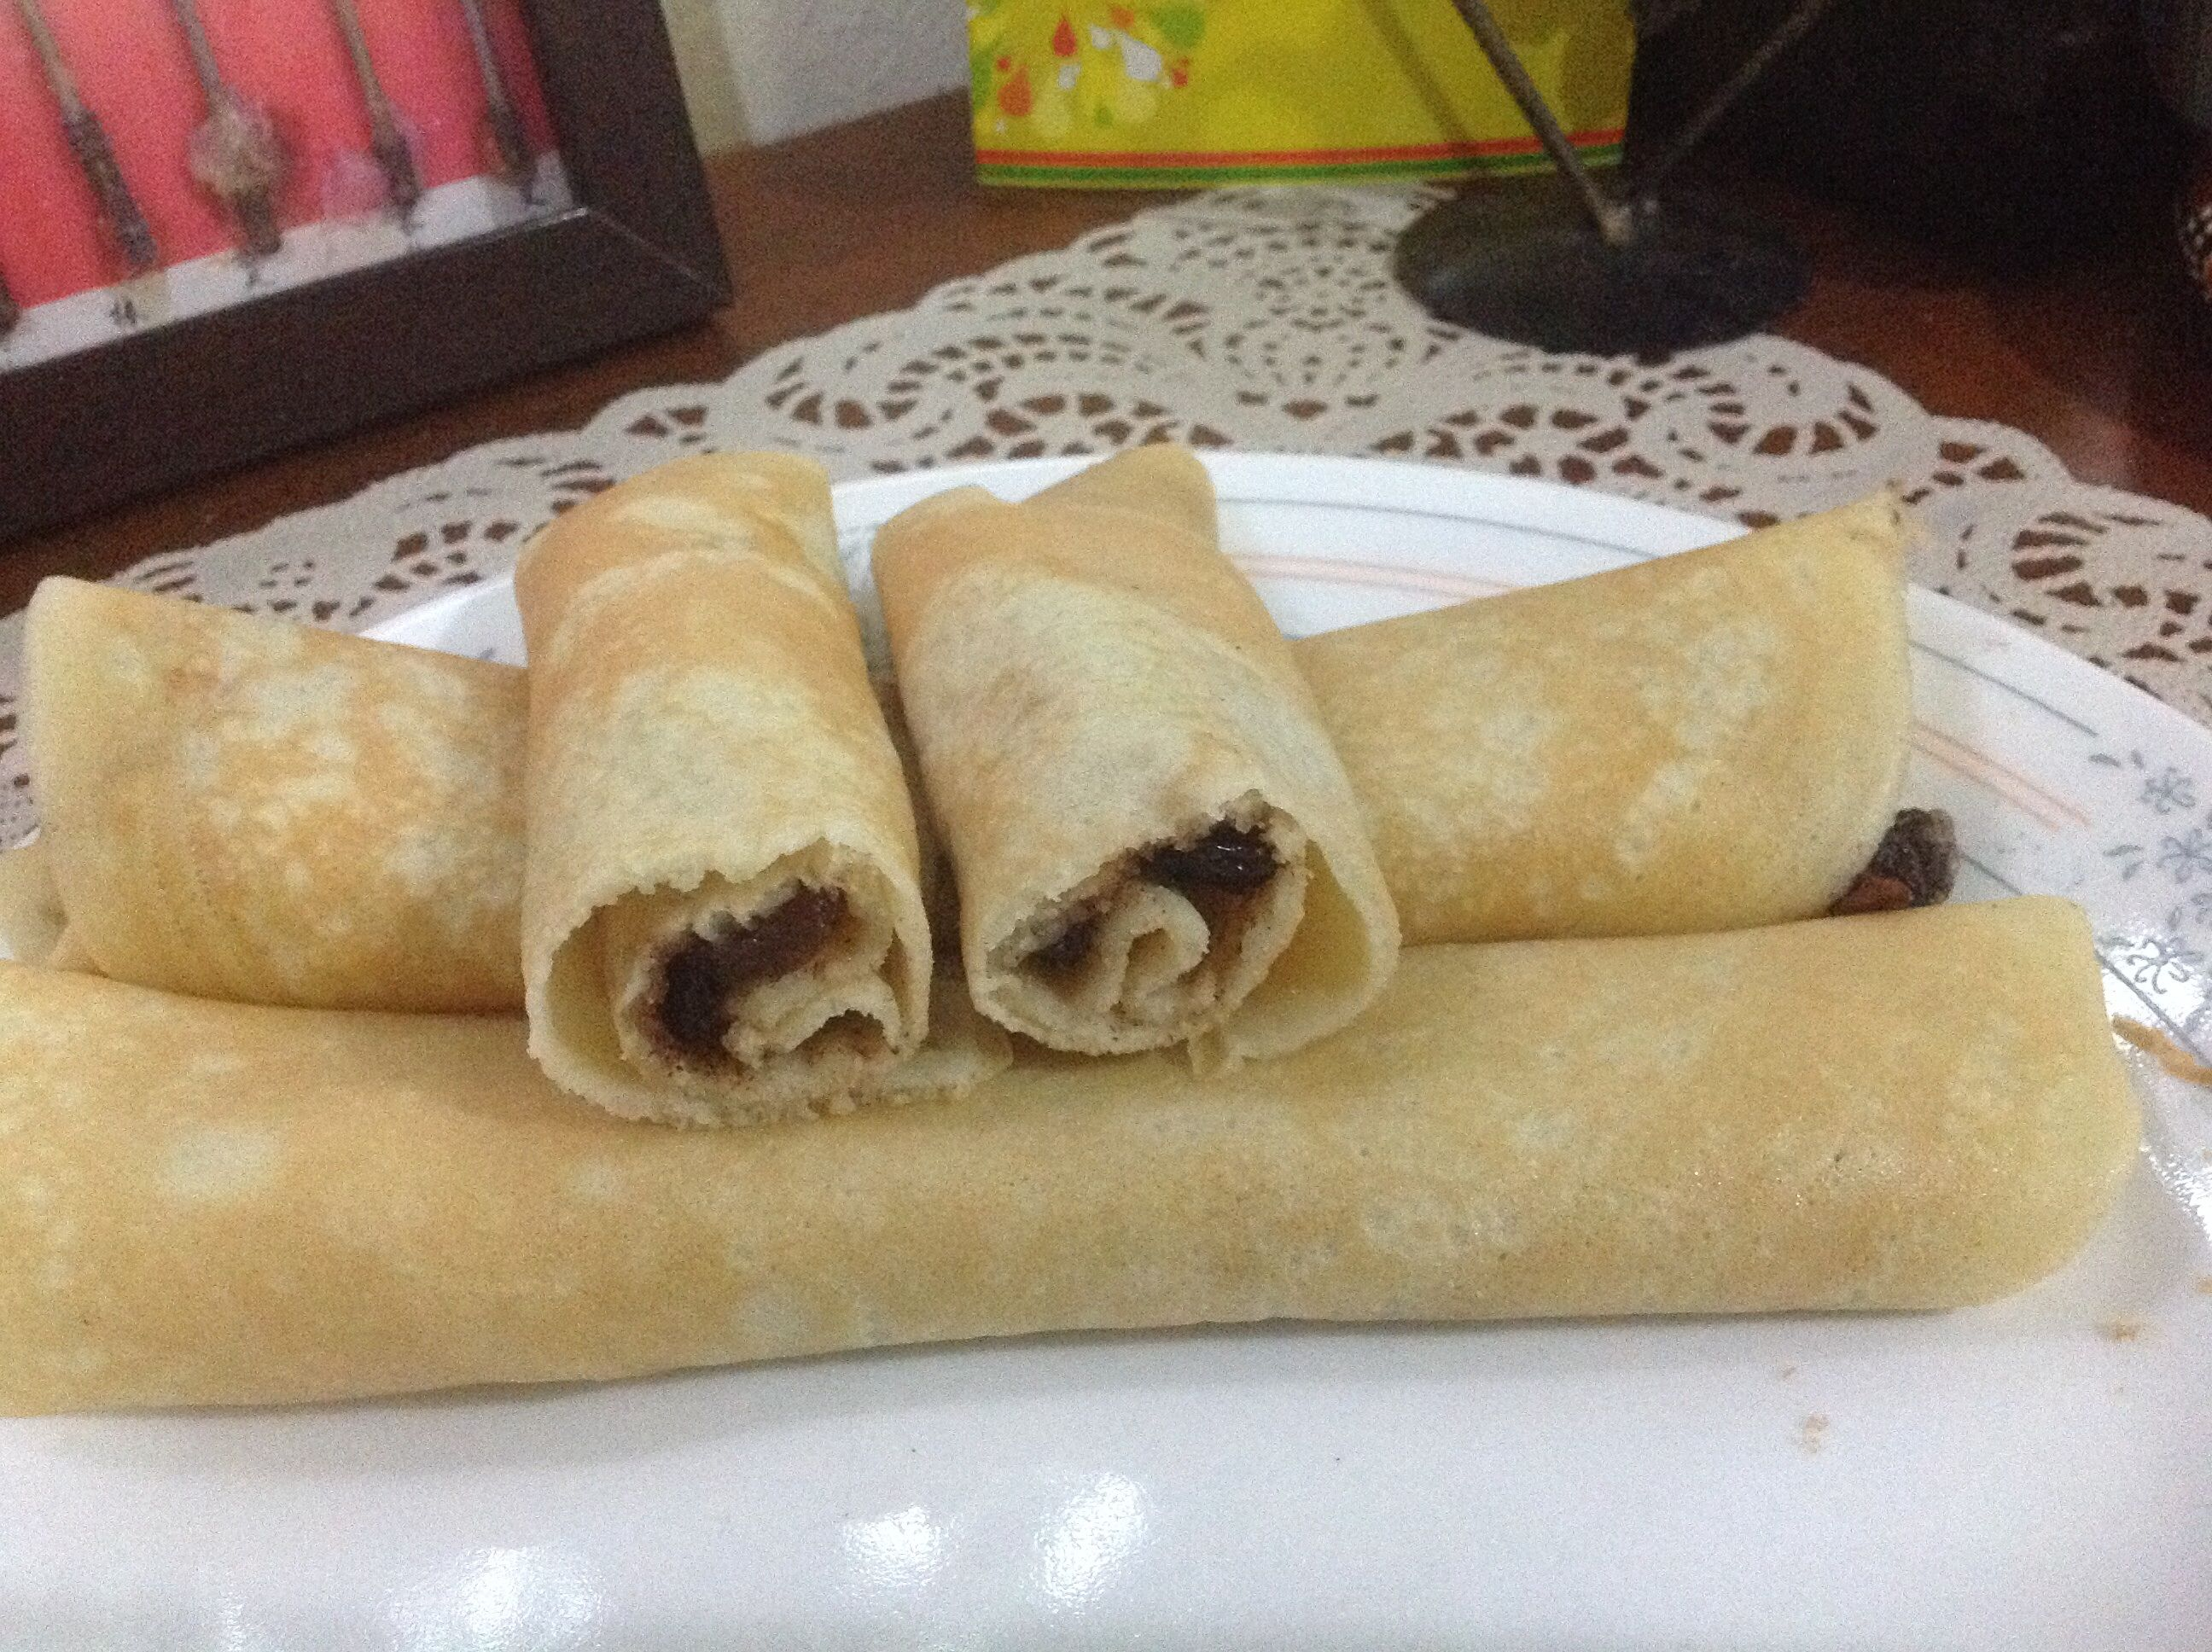 Cinnamon raisin crepe for breakfast Made from balance waffle batter.